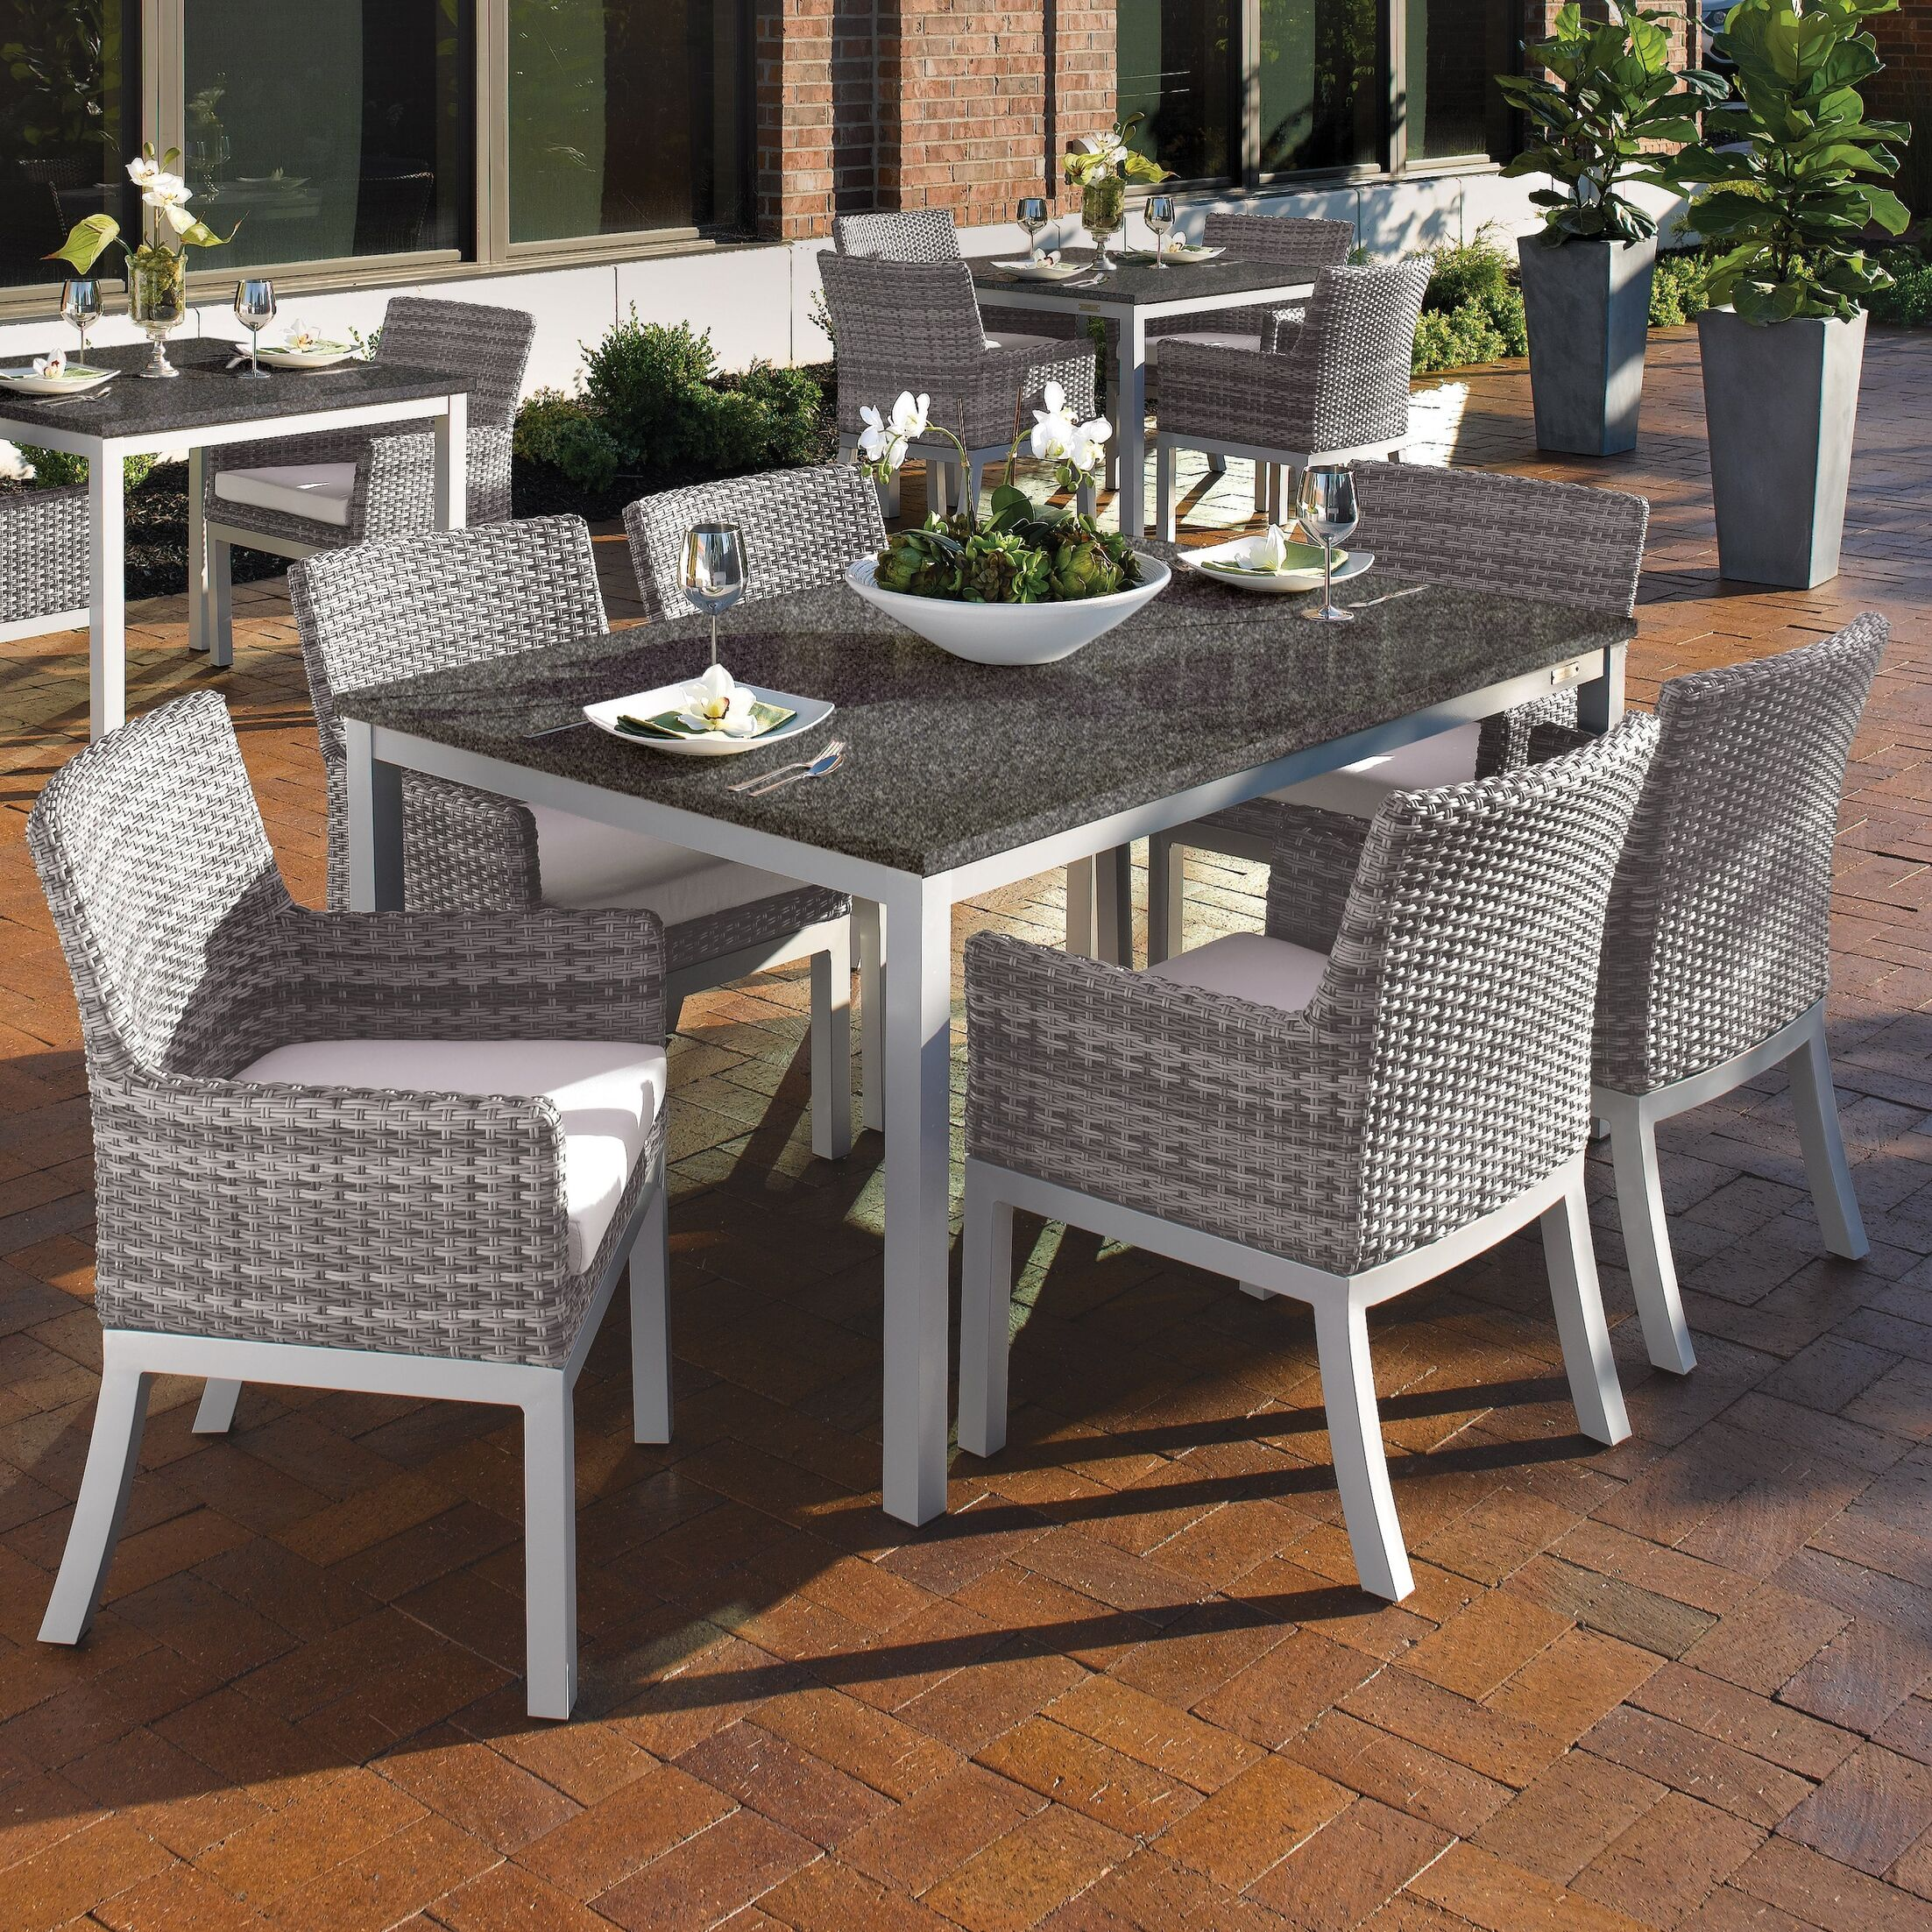 Farmington Wicker 7 Piece Dining Set Cushion Color: Eggshell White, Finish: Ash